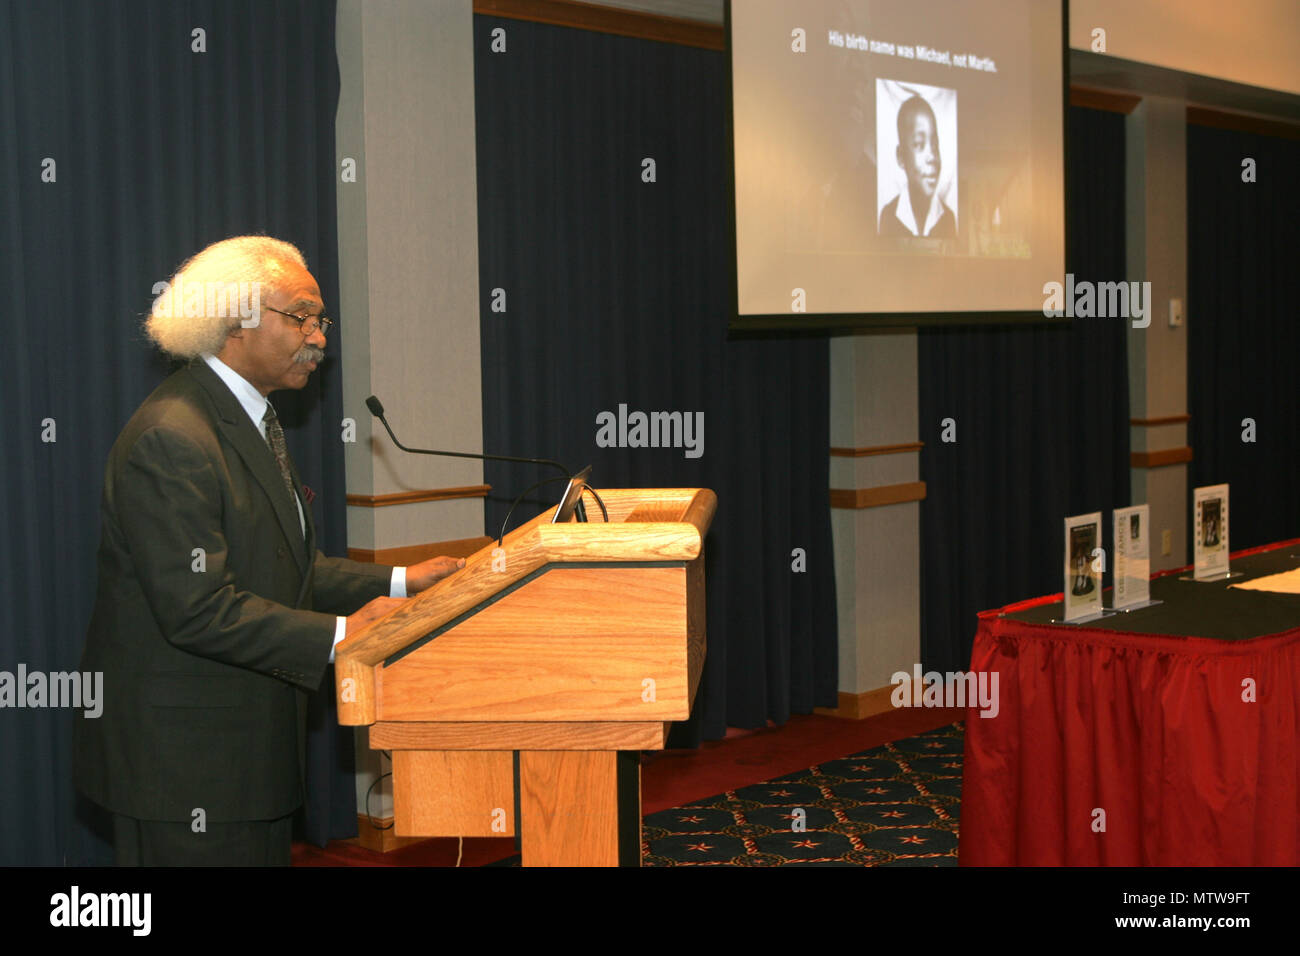 Dr. Floyd Rose of Madison, Wis., gives his presentation during the Fort McCoy observance of Martin Luther King Jr. Day on Jan 12, 2017, at McCoy's Community Center. Rose is a businessman who's worked for more than 40 years to evaluate, analyze, and develop policy for private- and public-sector organizations concerning sales growth, procurement practices, human-resource management, and policy. He holds leadership positions in multiple organizations, including the Wisconsin Diversity Procurement Network and 100 Black Men of America Inc. (Madison Chapter). (U.S. Army Photo by Scott T. Sturkol, Pu Stock Photo